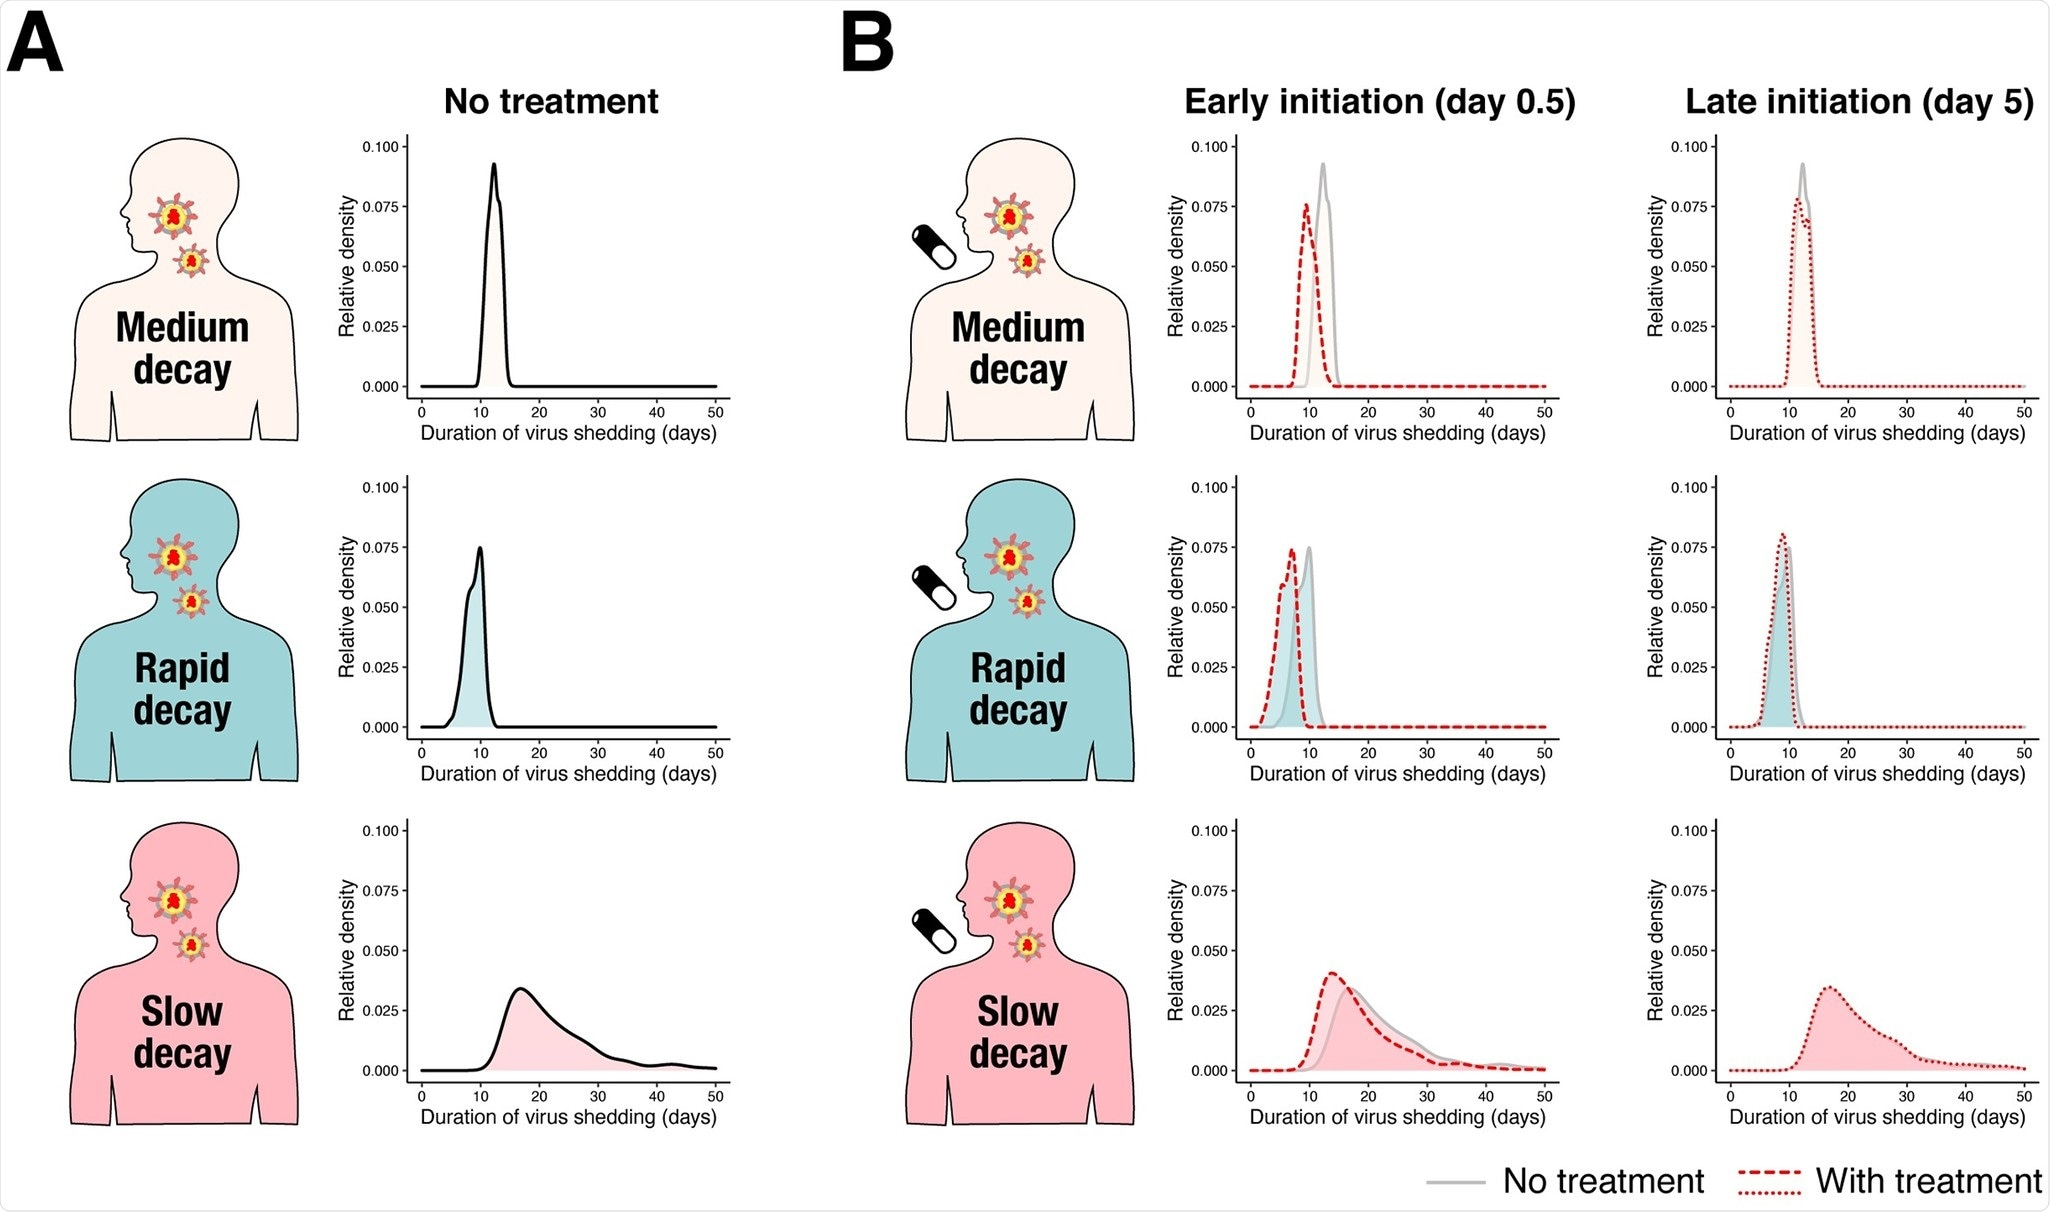 """Duration of virus shedding in the 3 different groups. (A) The relative density distributions of duration of virus shedding since symptom onset for the 3 groups (light pink: medium decay group, light blue: rapid decay group, and pink: slow decay group) without treatment obtained through simulation. (B) The relative density distributions of duration of virus shedding since symptom onset for the 3 groups under antiviral treatment with different inhibition rates and different timing of treatment initiation. The left 3 panels are when antiviral treatment is initiated at 0.5 days (""""Early initiation"""") since symptom onset. The red dotted line corresponds to the distribution with a 99% inhibition rate. The distribution without treatment is shown in the back for comparison. The right 3 panels are when antiviral treatment is initiated at 5 days (""""Late initiation"""") since symptom onset. The distributions are represented as """"relative density"""" to reflect different proportions of the 3 groups."""